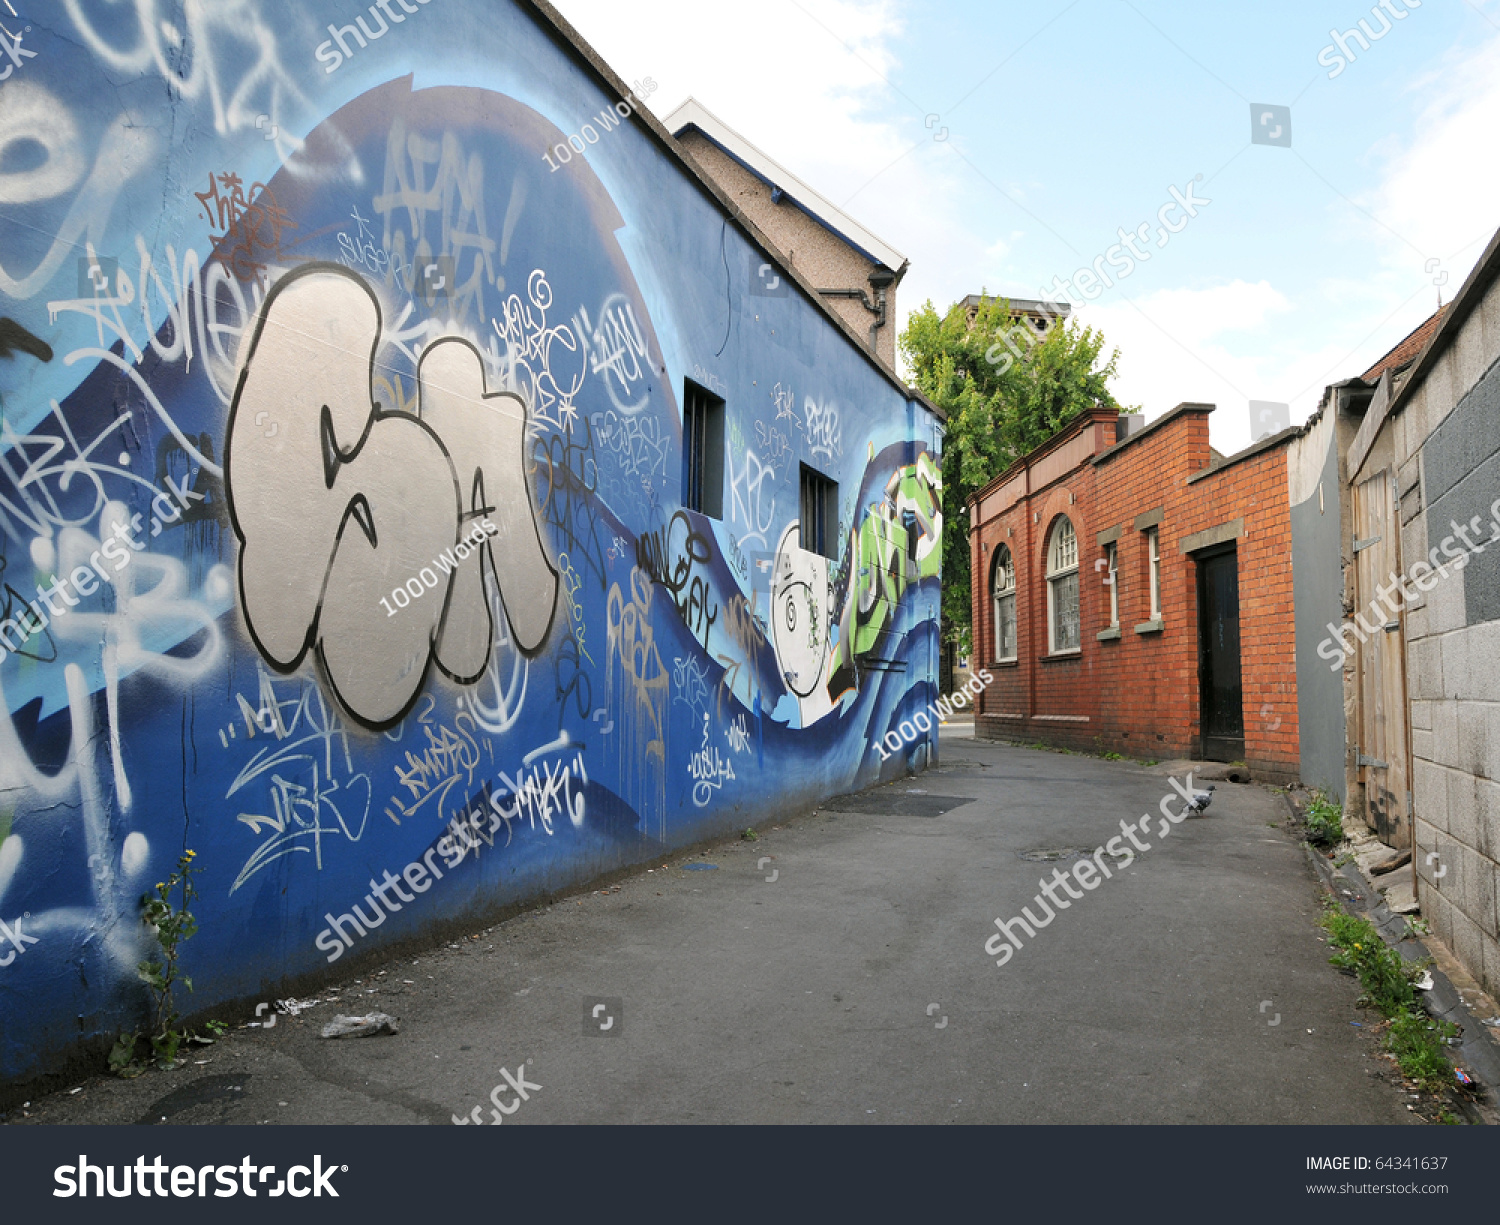 Graffiti wall uk - Bristol Sept 26 Graffiti Wall In An Alleyway In The Gloucester Road Area Of